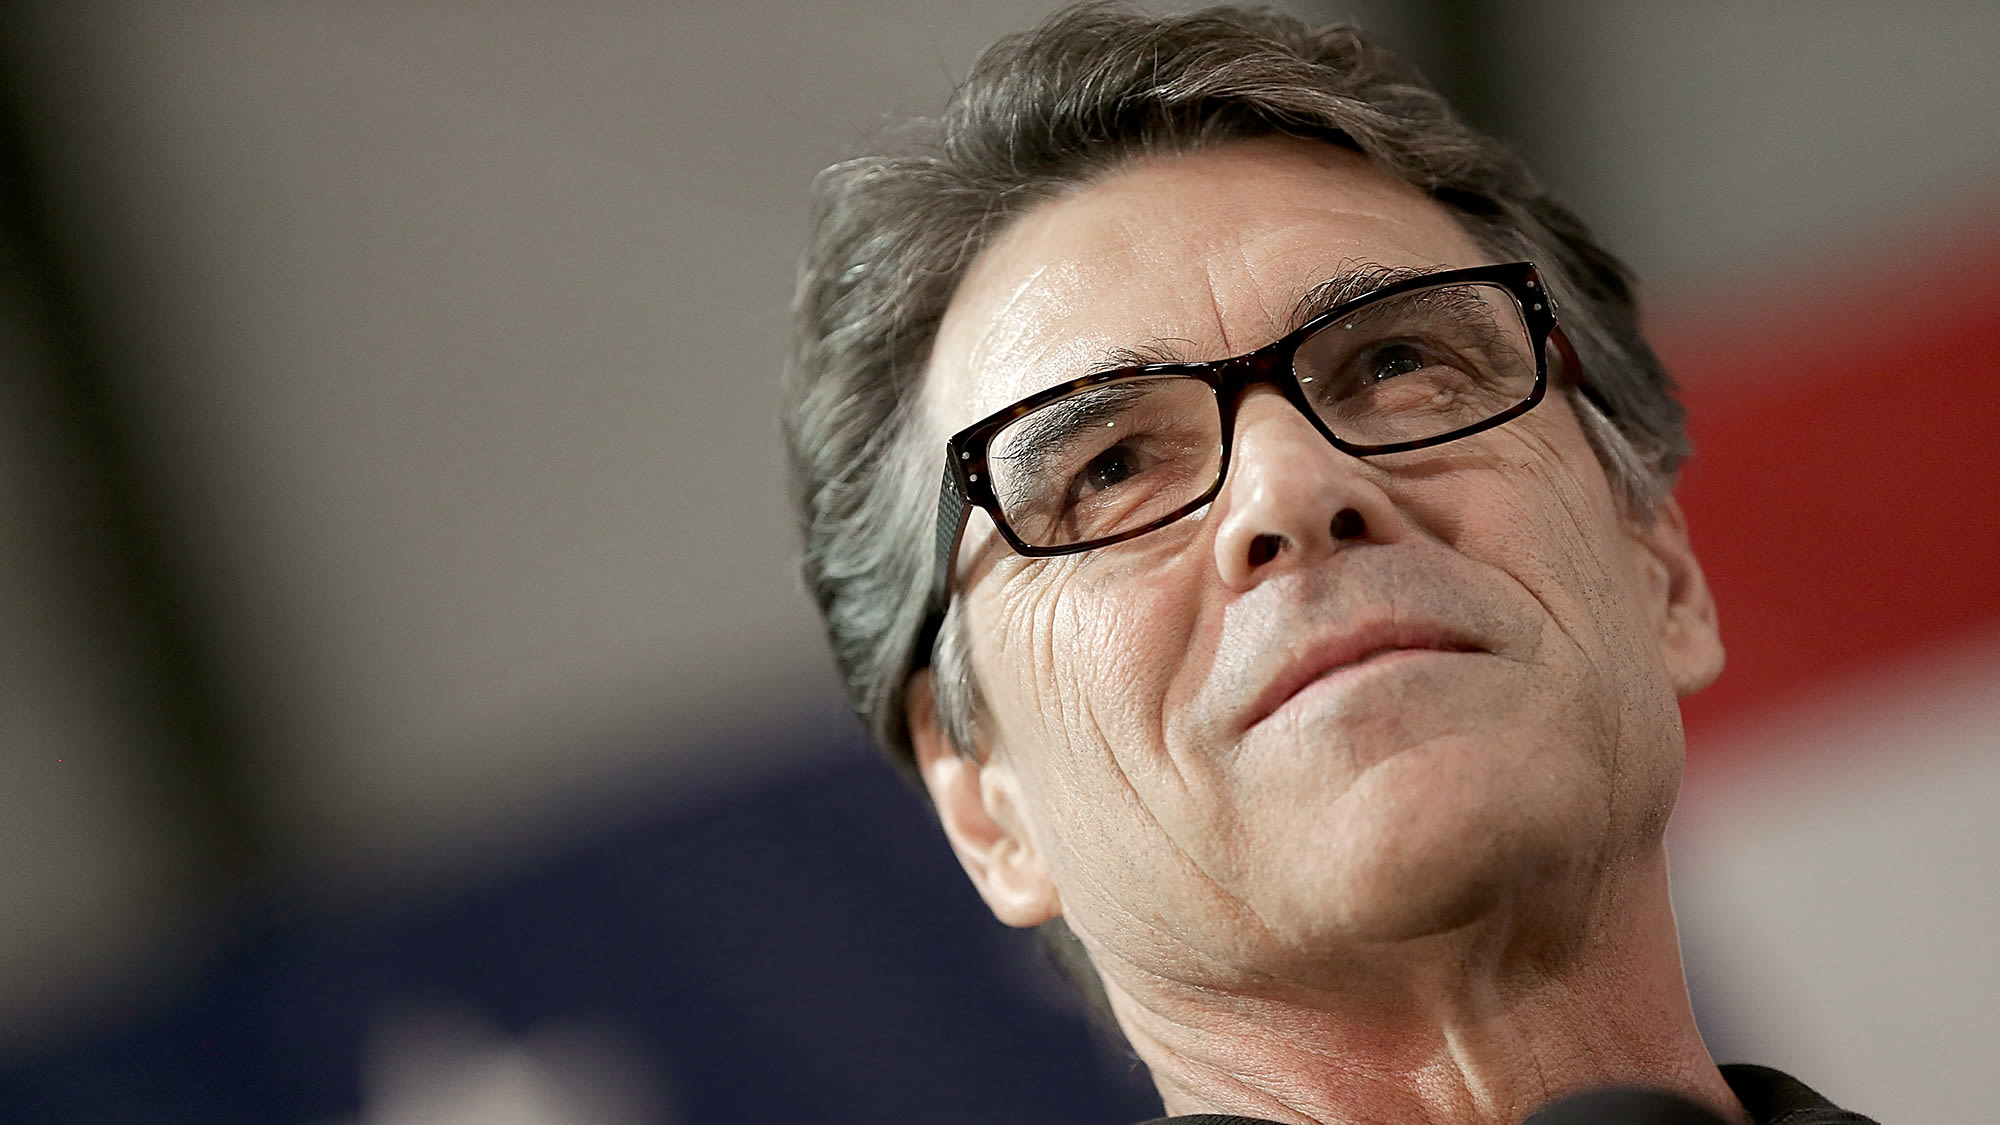 Rick Perry says it's too soon to say if US oil reserves are needed